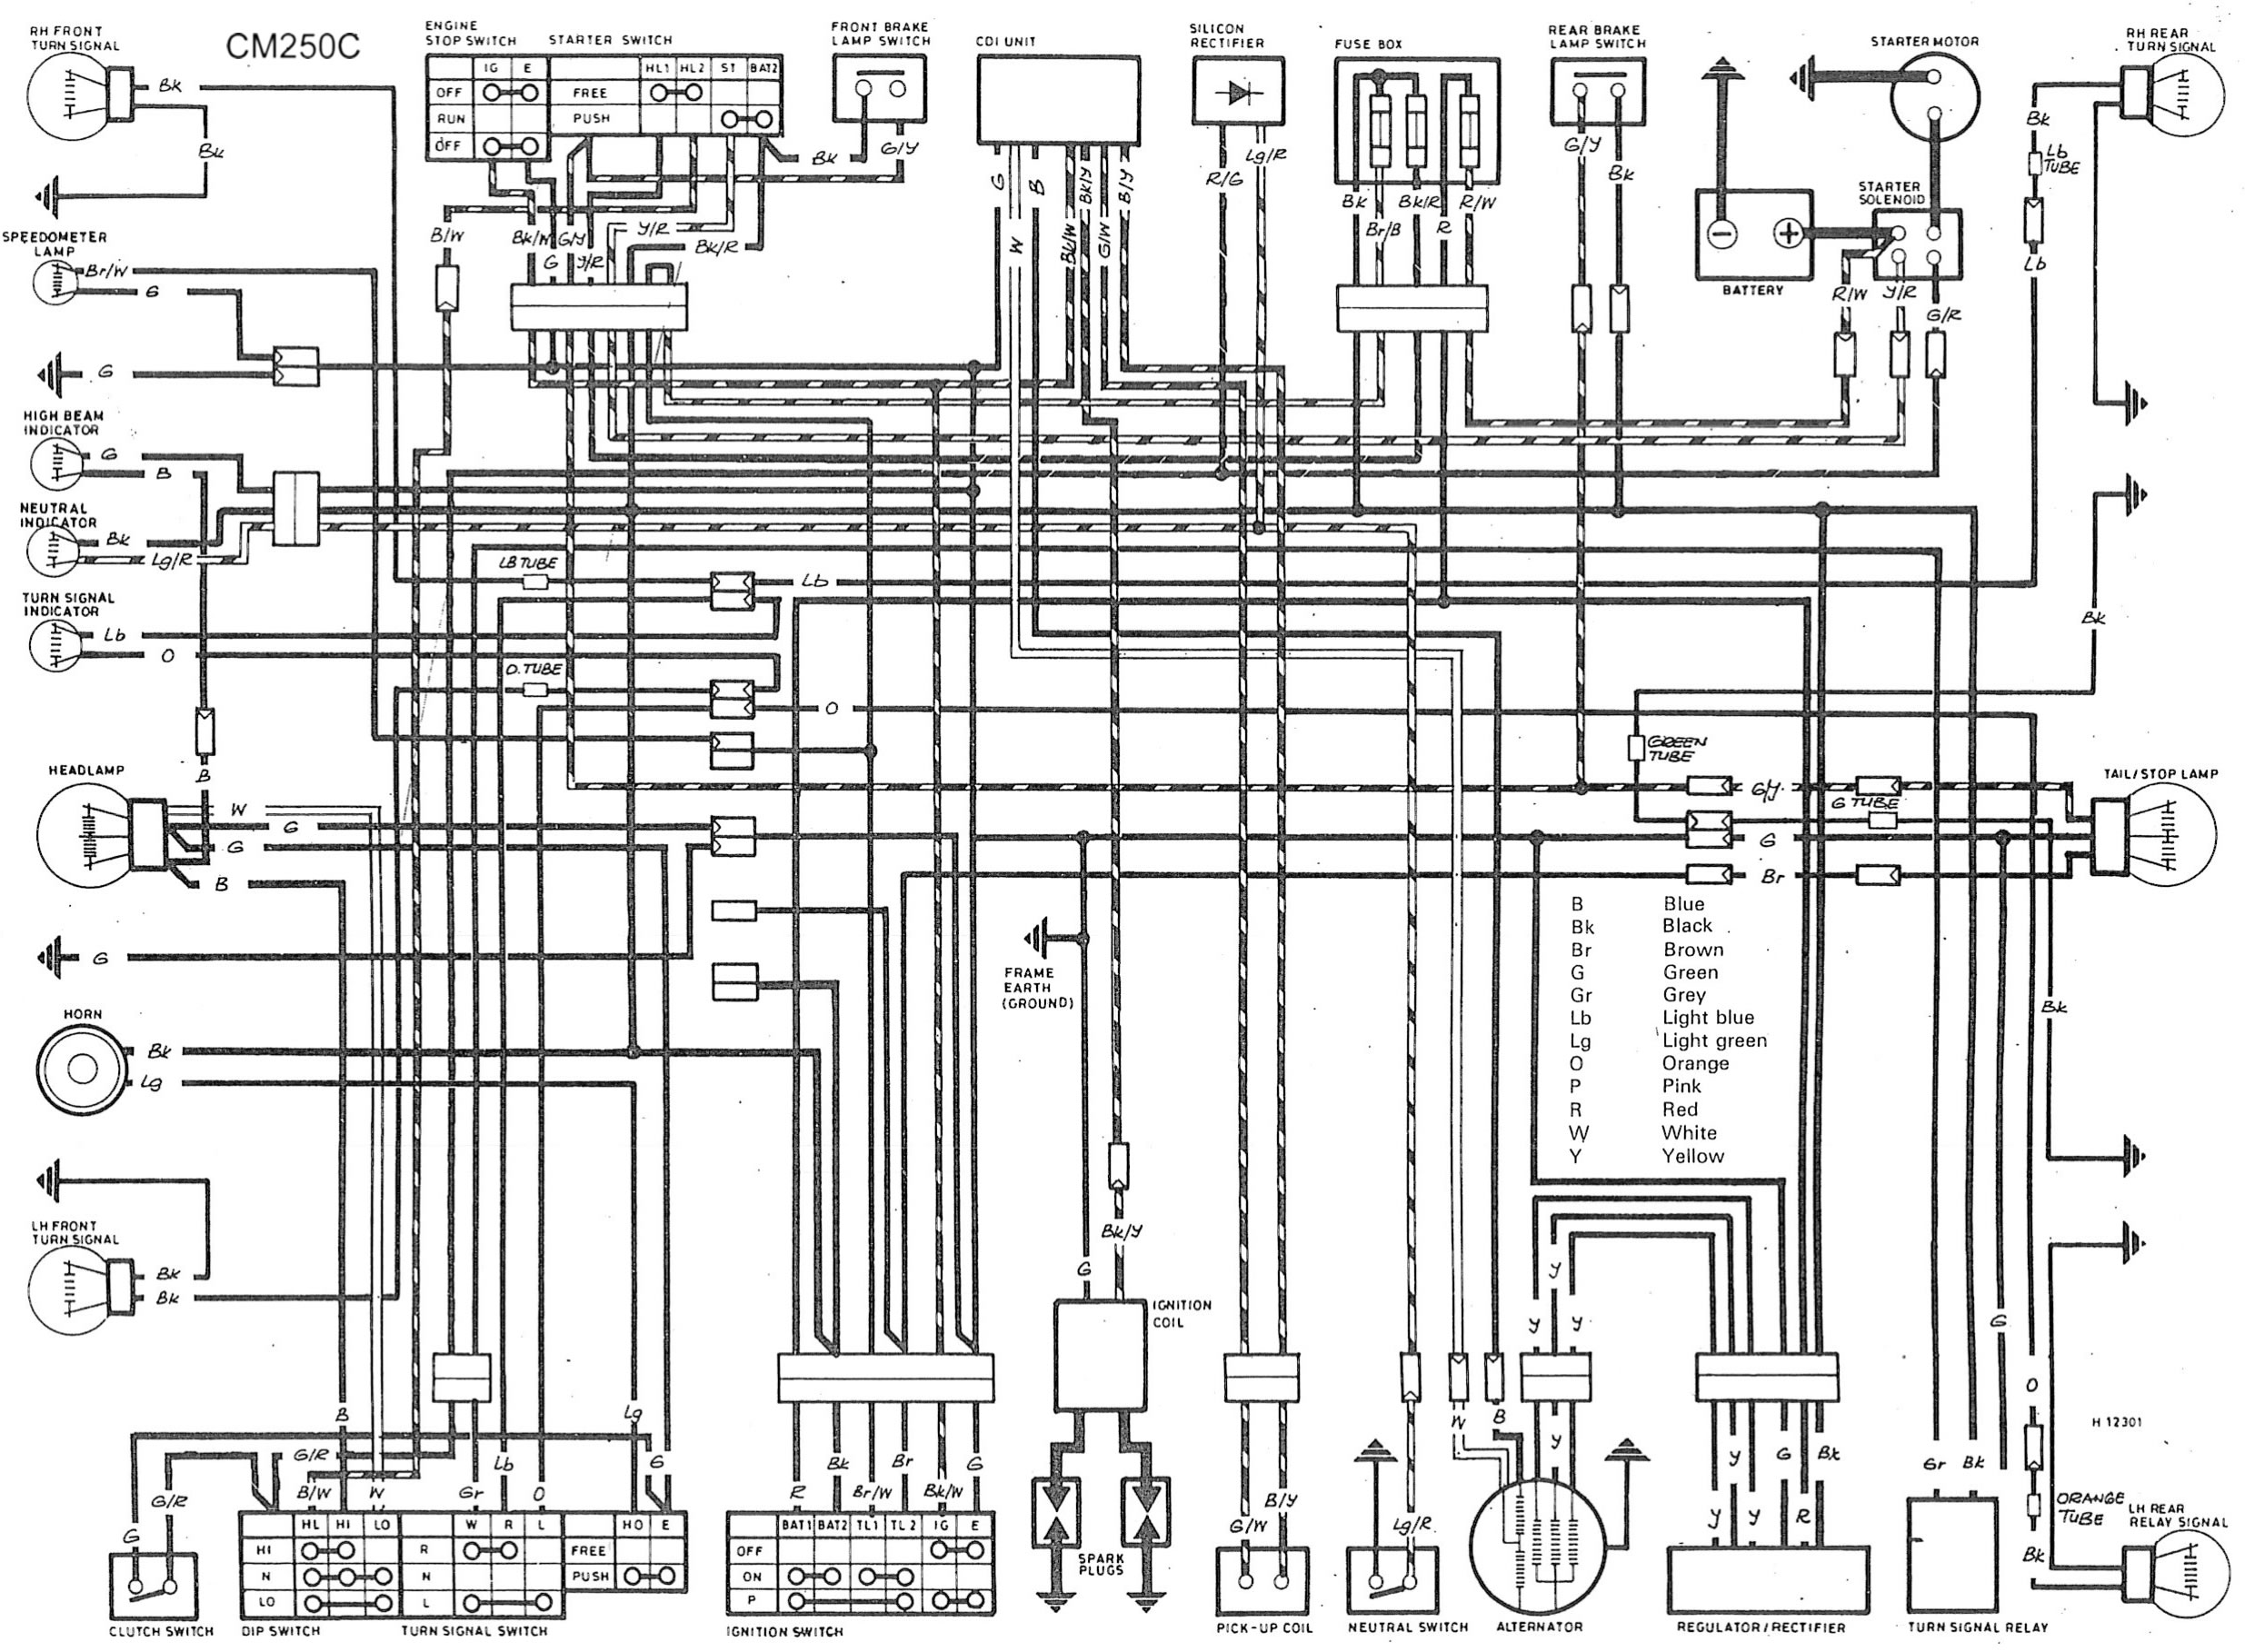 wirediagram cm wiring diagram cm hoist wiring diagram \u2022 wiring diagrams j boston subsat 6 wiring diagram at gsmx.co